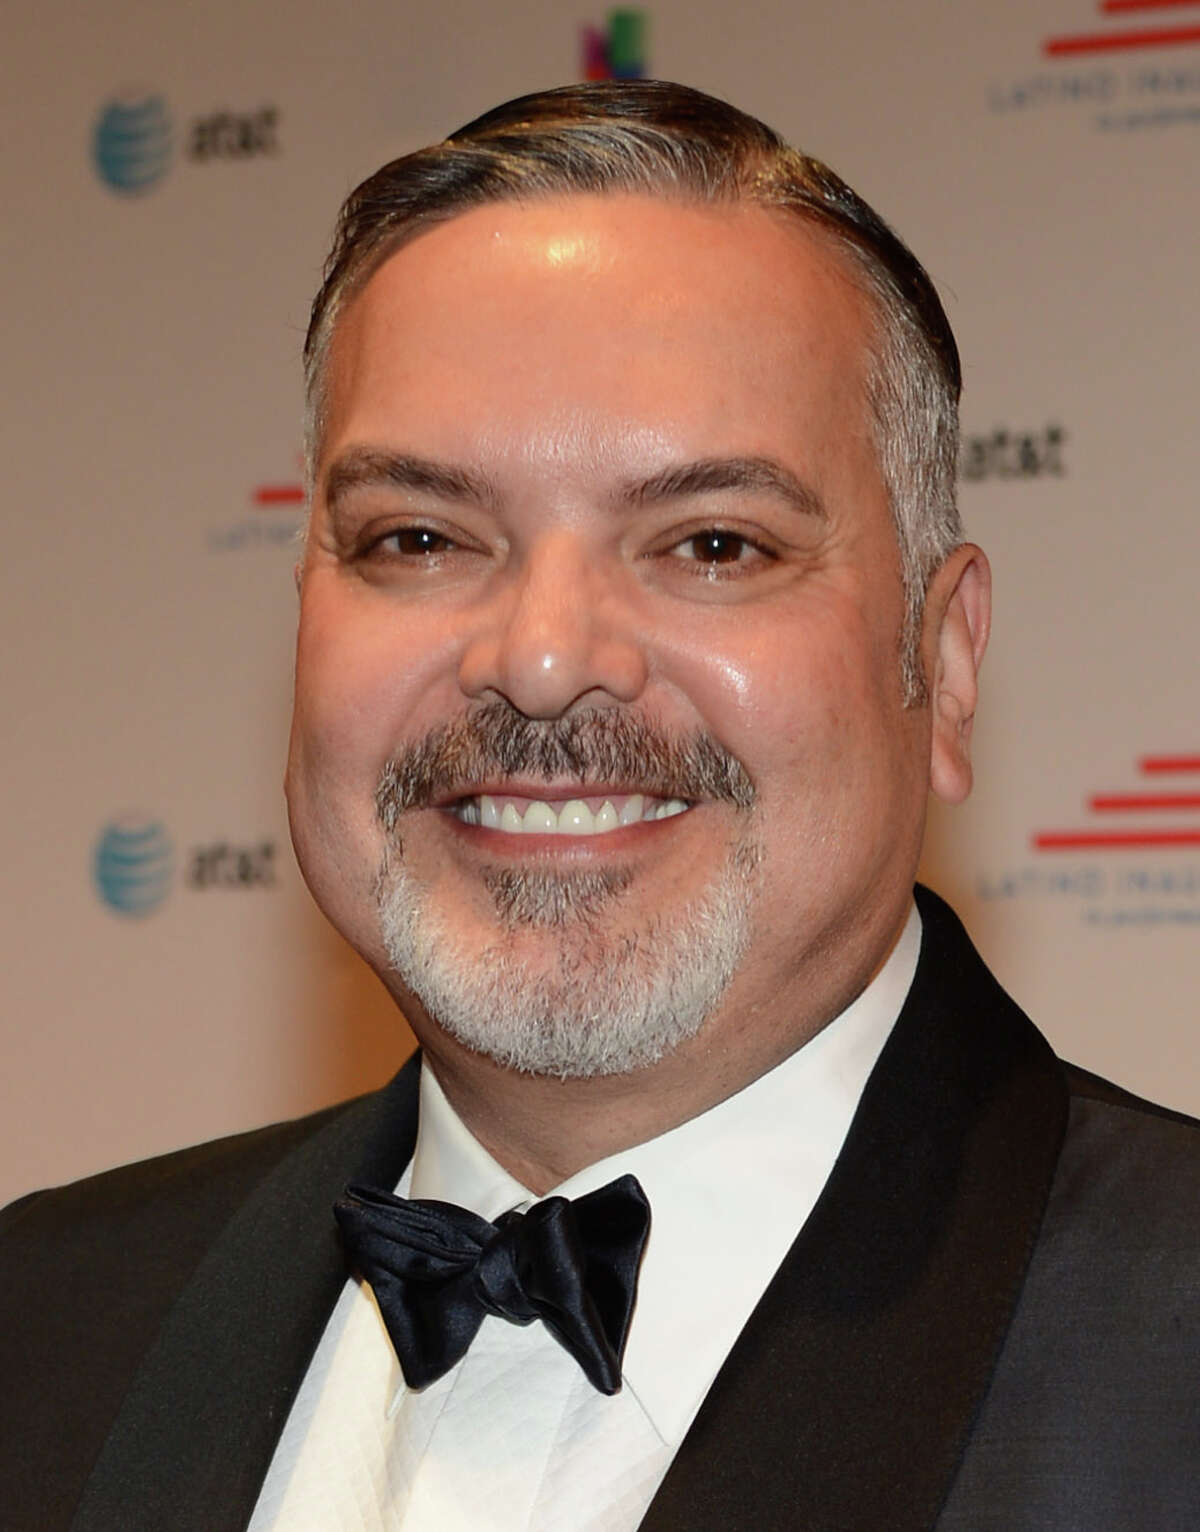 Henry R. Munoz III is chairman of the board of directors and CEO of San Antonio-based Munoz& Company.